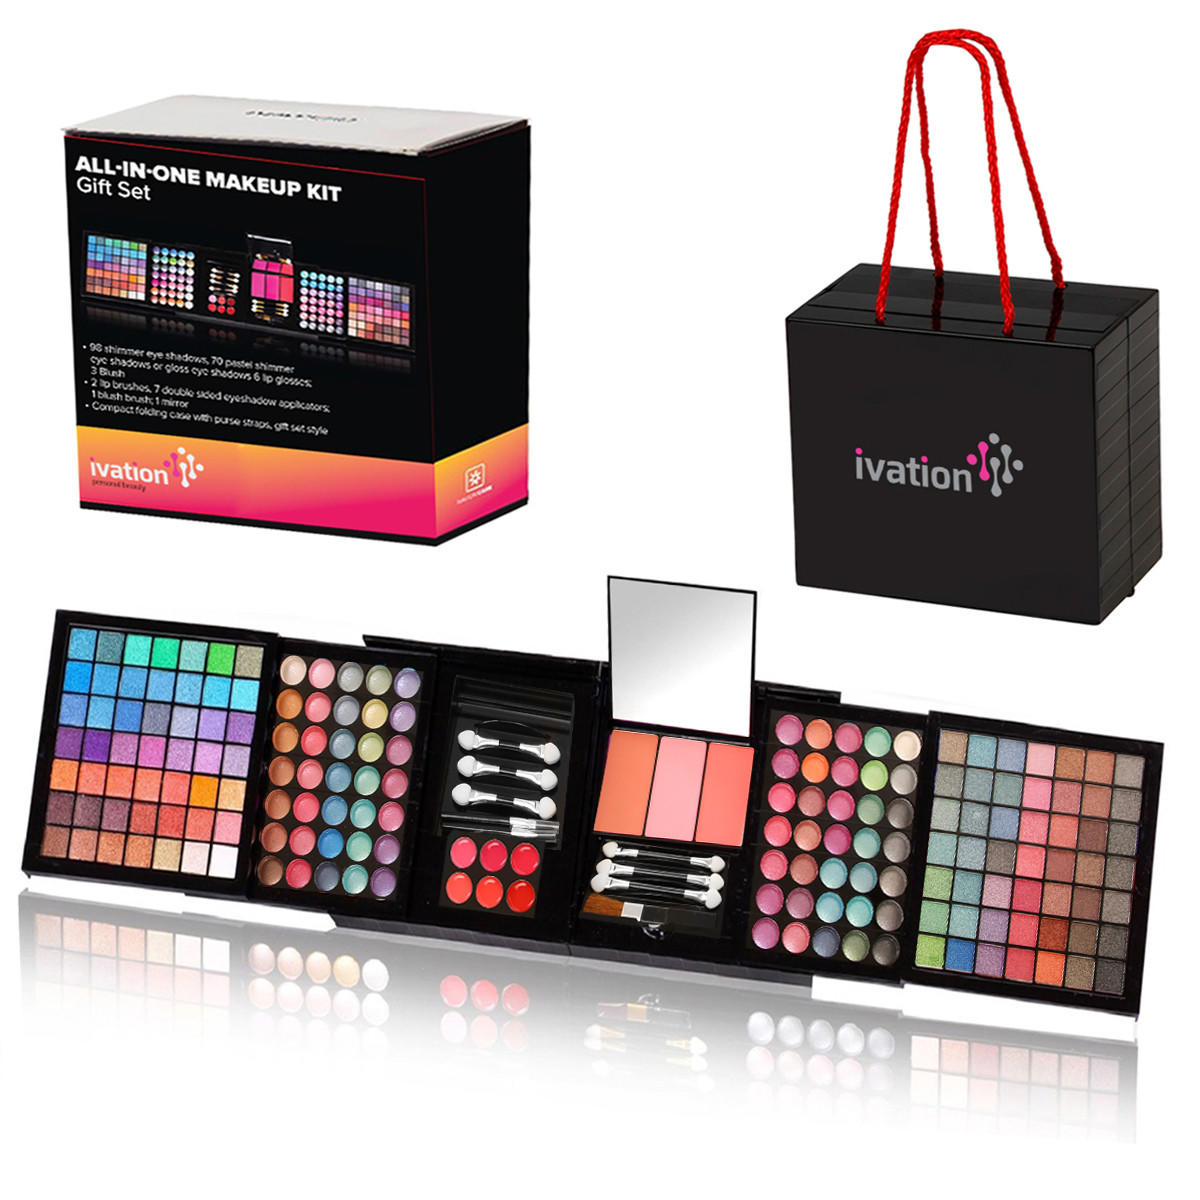 ivation allinone makeup kit gift set from beautiny epic